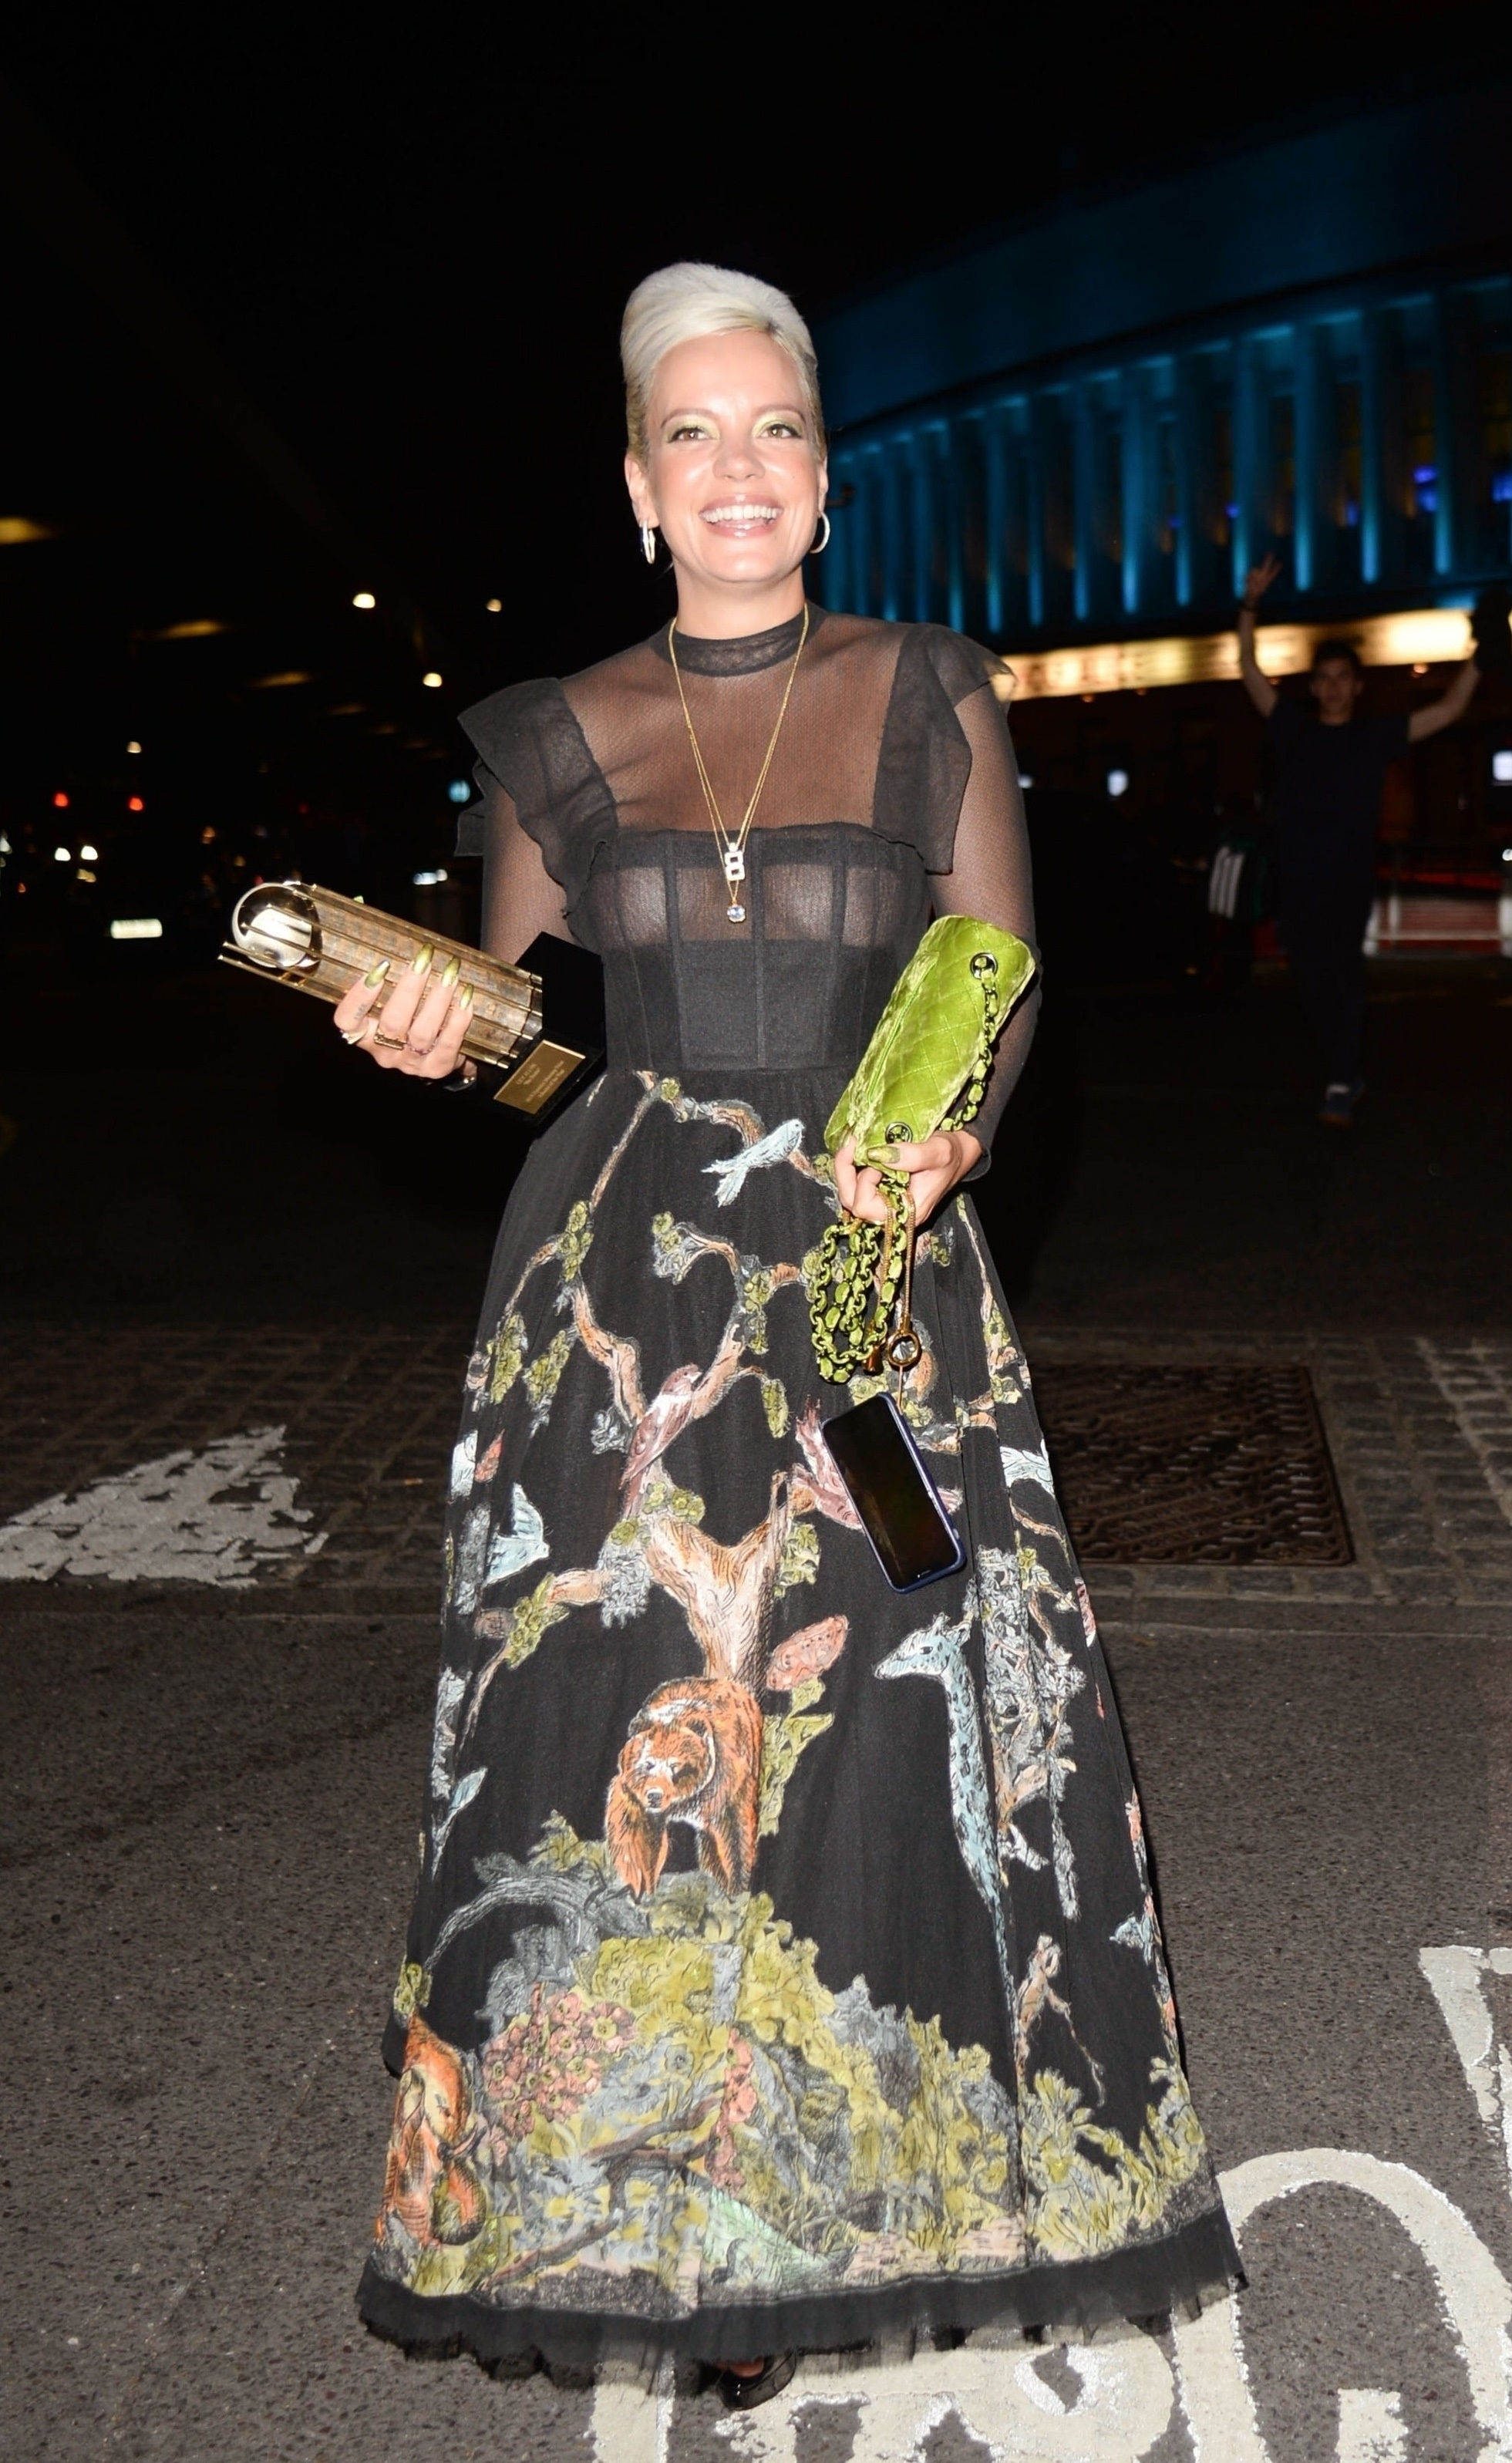 0919040453772_18_Lily-Allen-See-Through-TheFappeningBlog.com-19.jpg